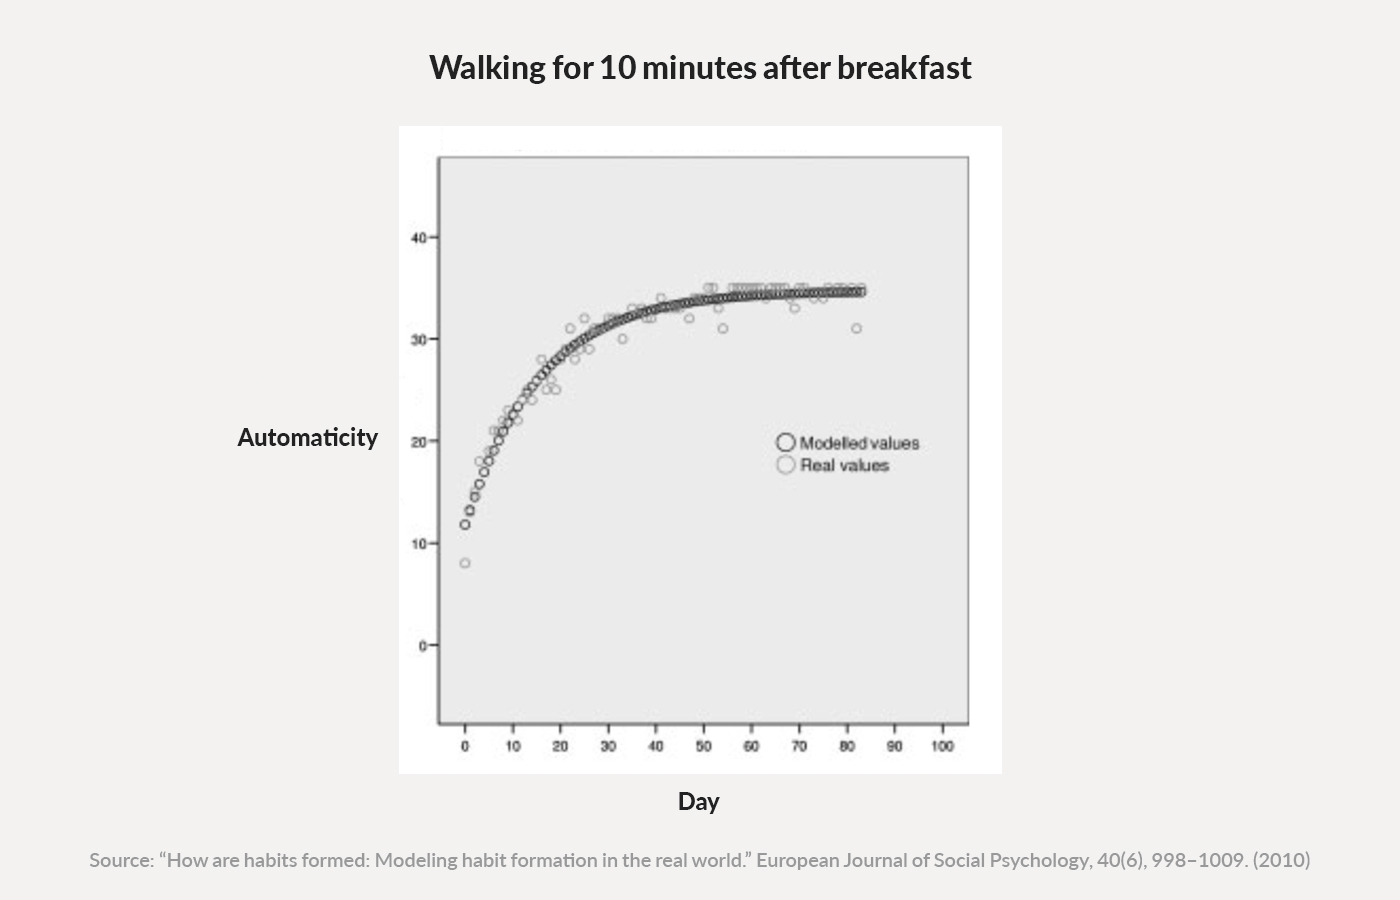 Habit automaticity for walking